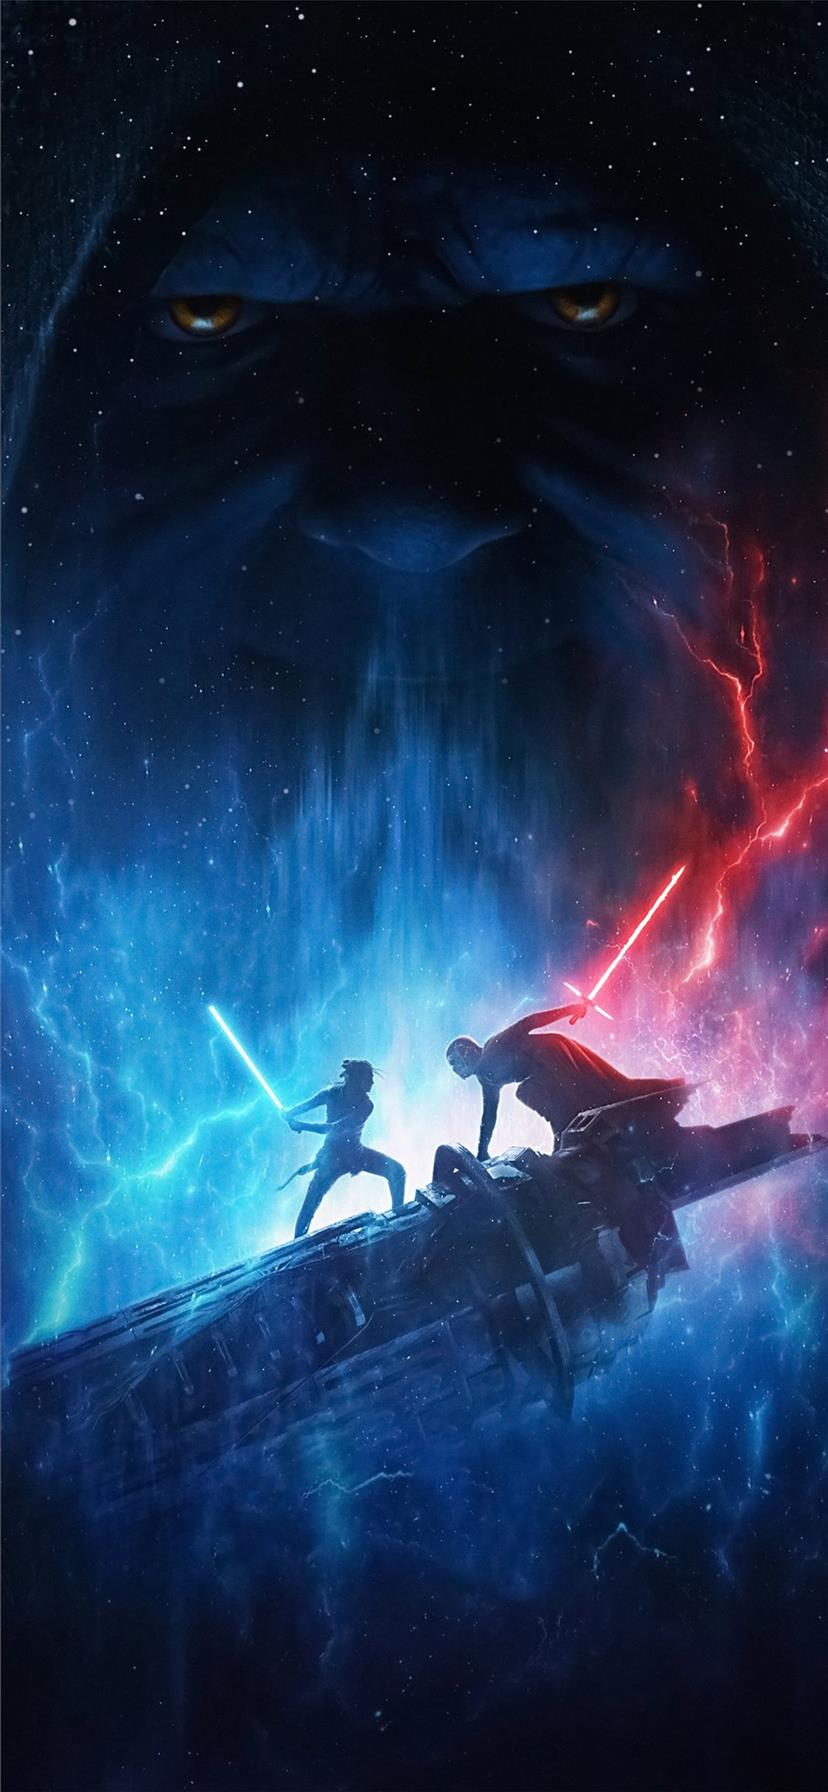 Star Wars The Rise Of Skywalker 2019 4k Iphone Wallpapers